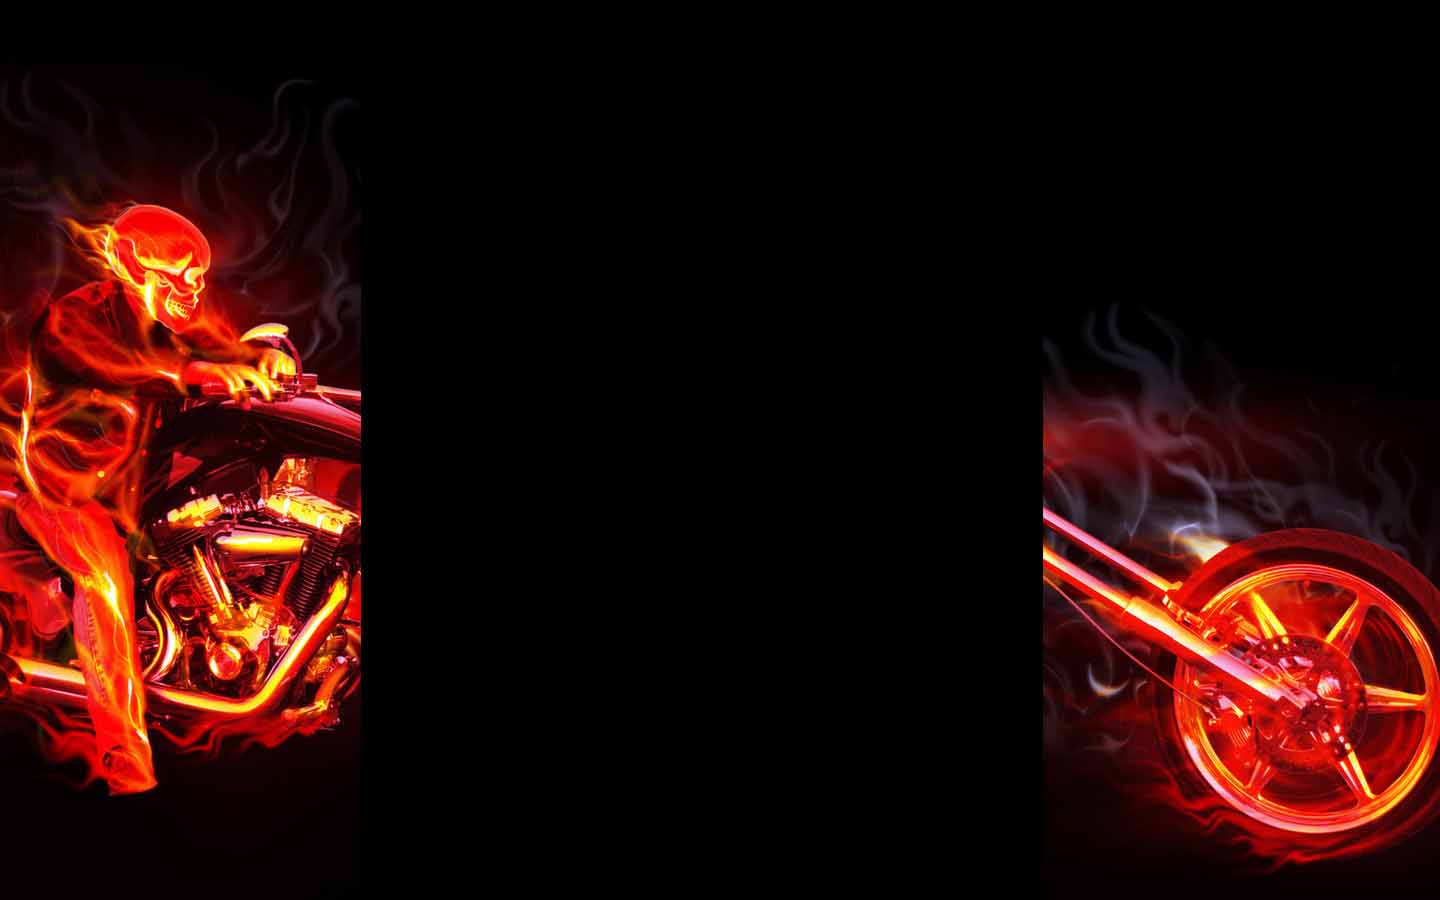 Twitter Backgrounds Ghost Rider Twitter Layouts Ghost Rider Twitter 1440x900